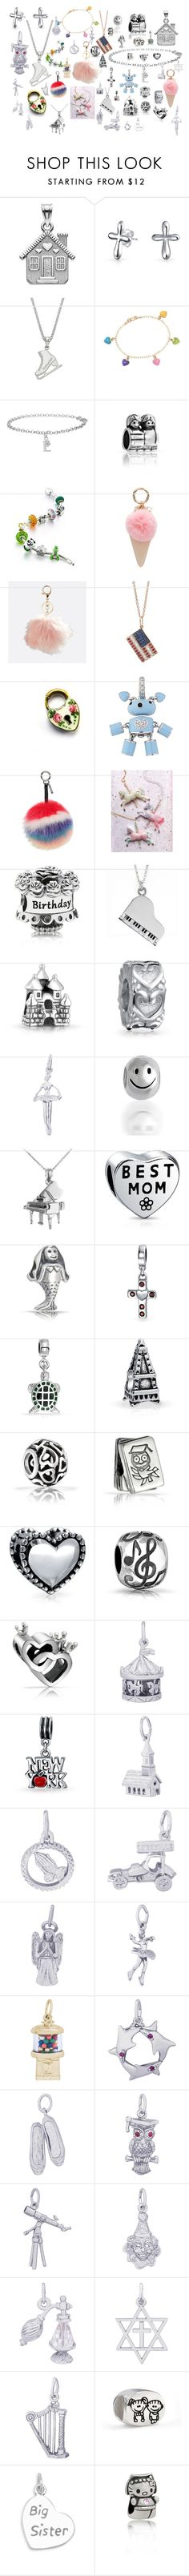 """""""Lilly's 2nd Birthday"""" by airandearth on Polyvore featuring Bling Jewelry, Ross-Simons, Iphoria, Avenue, Sydney Evan, Aaron Basha, Fendi, Pandora, Jan Leslie and Rembrandt Charms"""